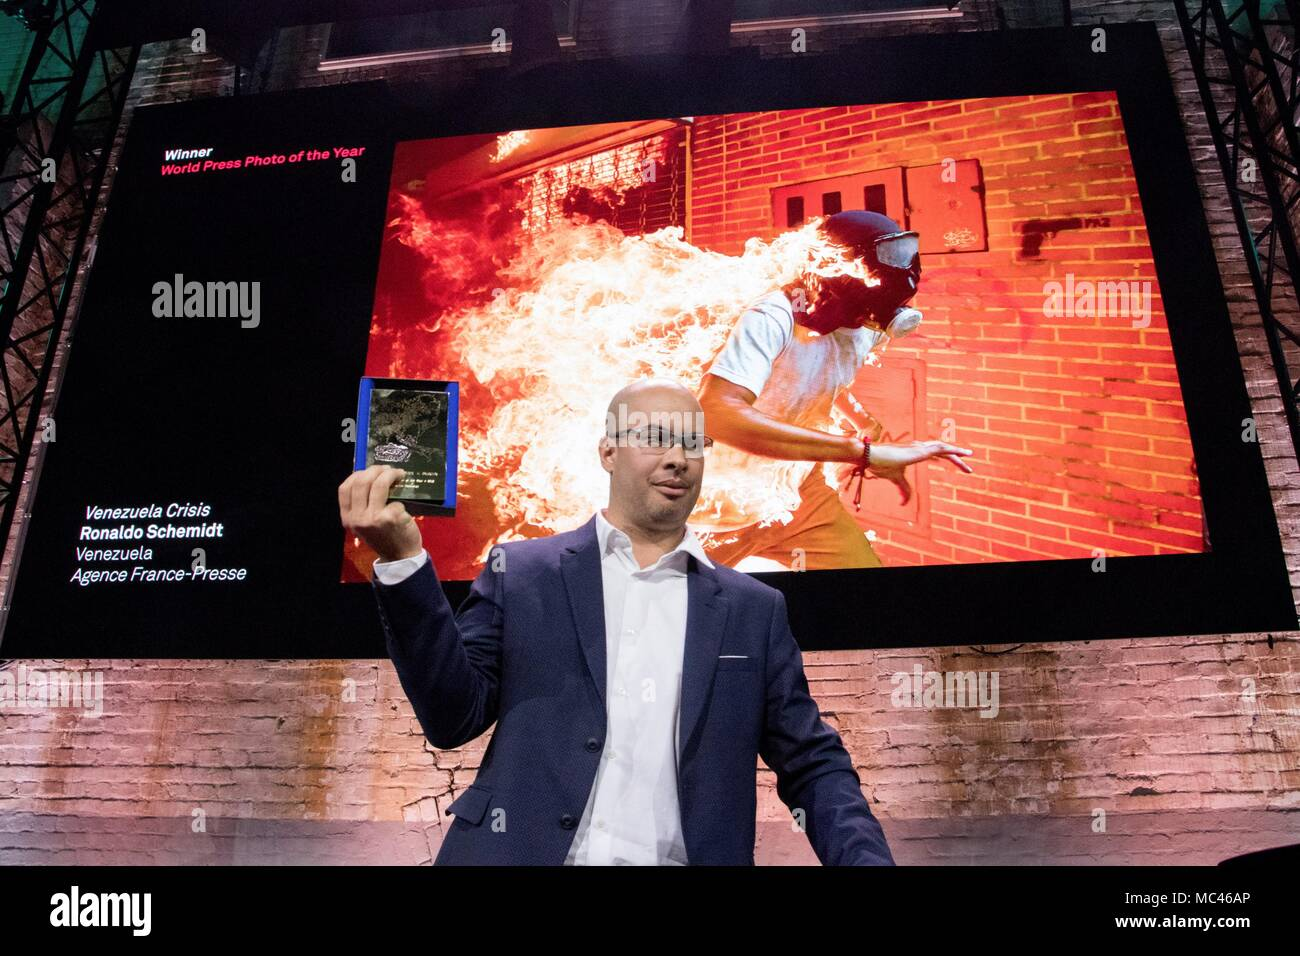 Amsterdam, Holanda. 12th Apr, 2018. Venezuelan photojournalist Ronaldo Schemidt (R) after winning the World Press Photo award in Amsterdam, Netherlands, 12 April 2018. The winning picture portraits Jose Victor Salazar, a Venezuelan opposition protestor accidentally burnt during clashes past 03 May 2017 in Caracas. Credit: David Morales Urbaneja/EFE/Alamy Live News - Stock Image